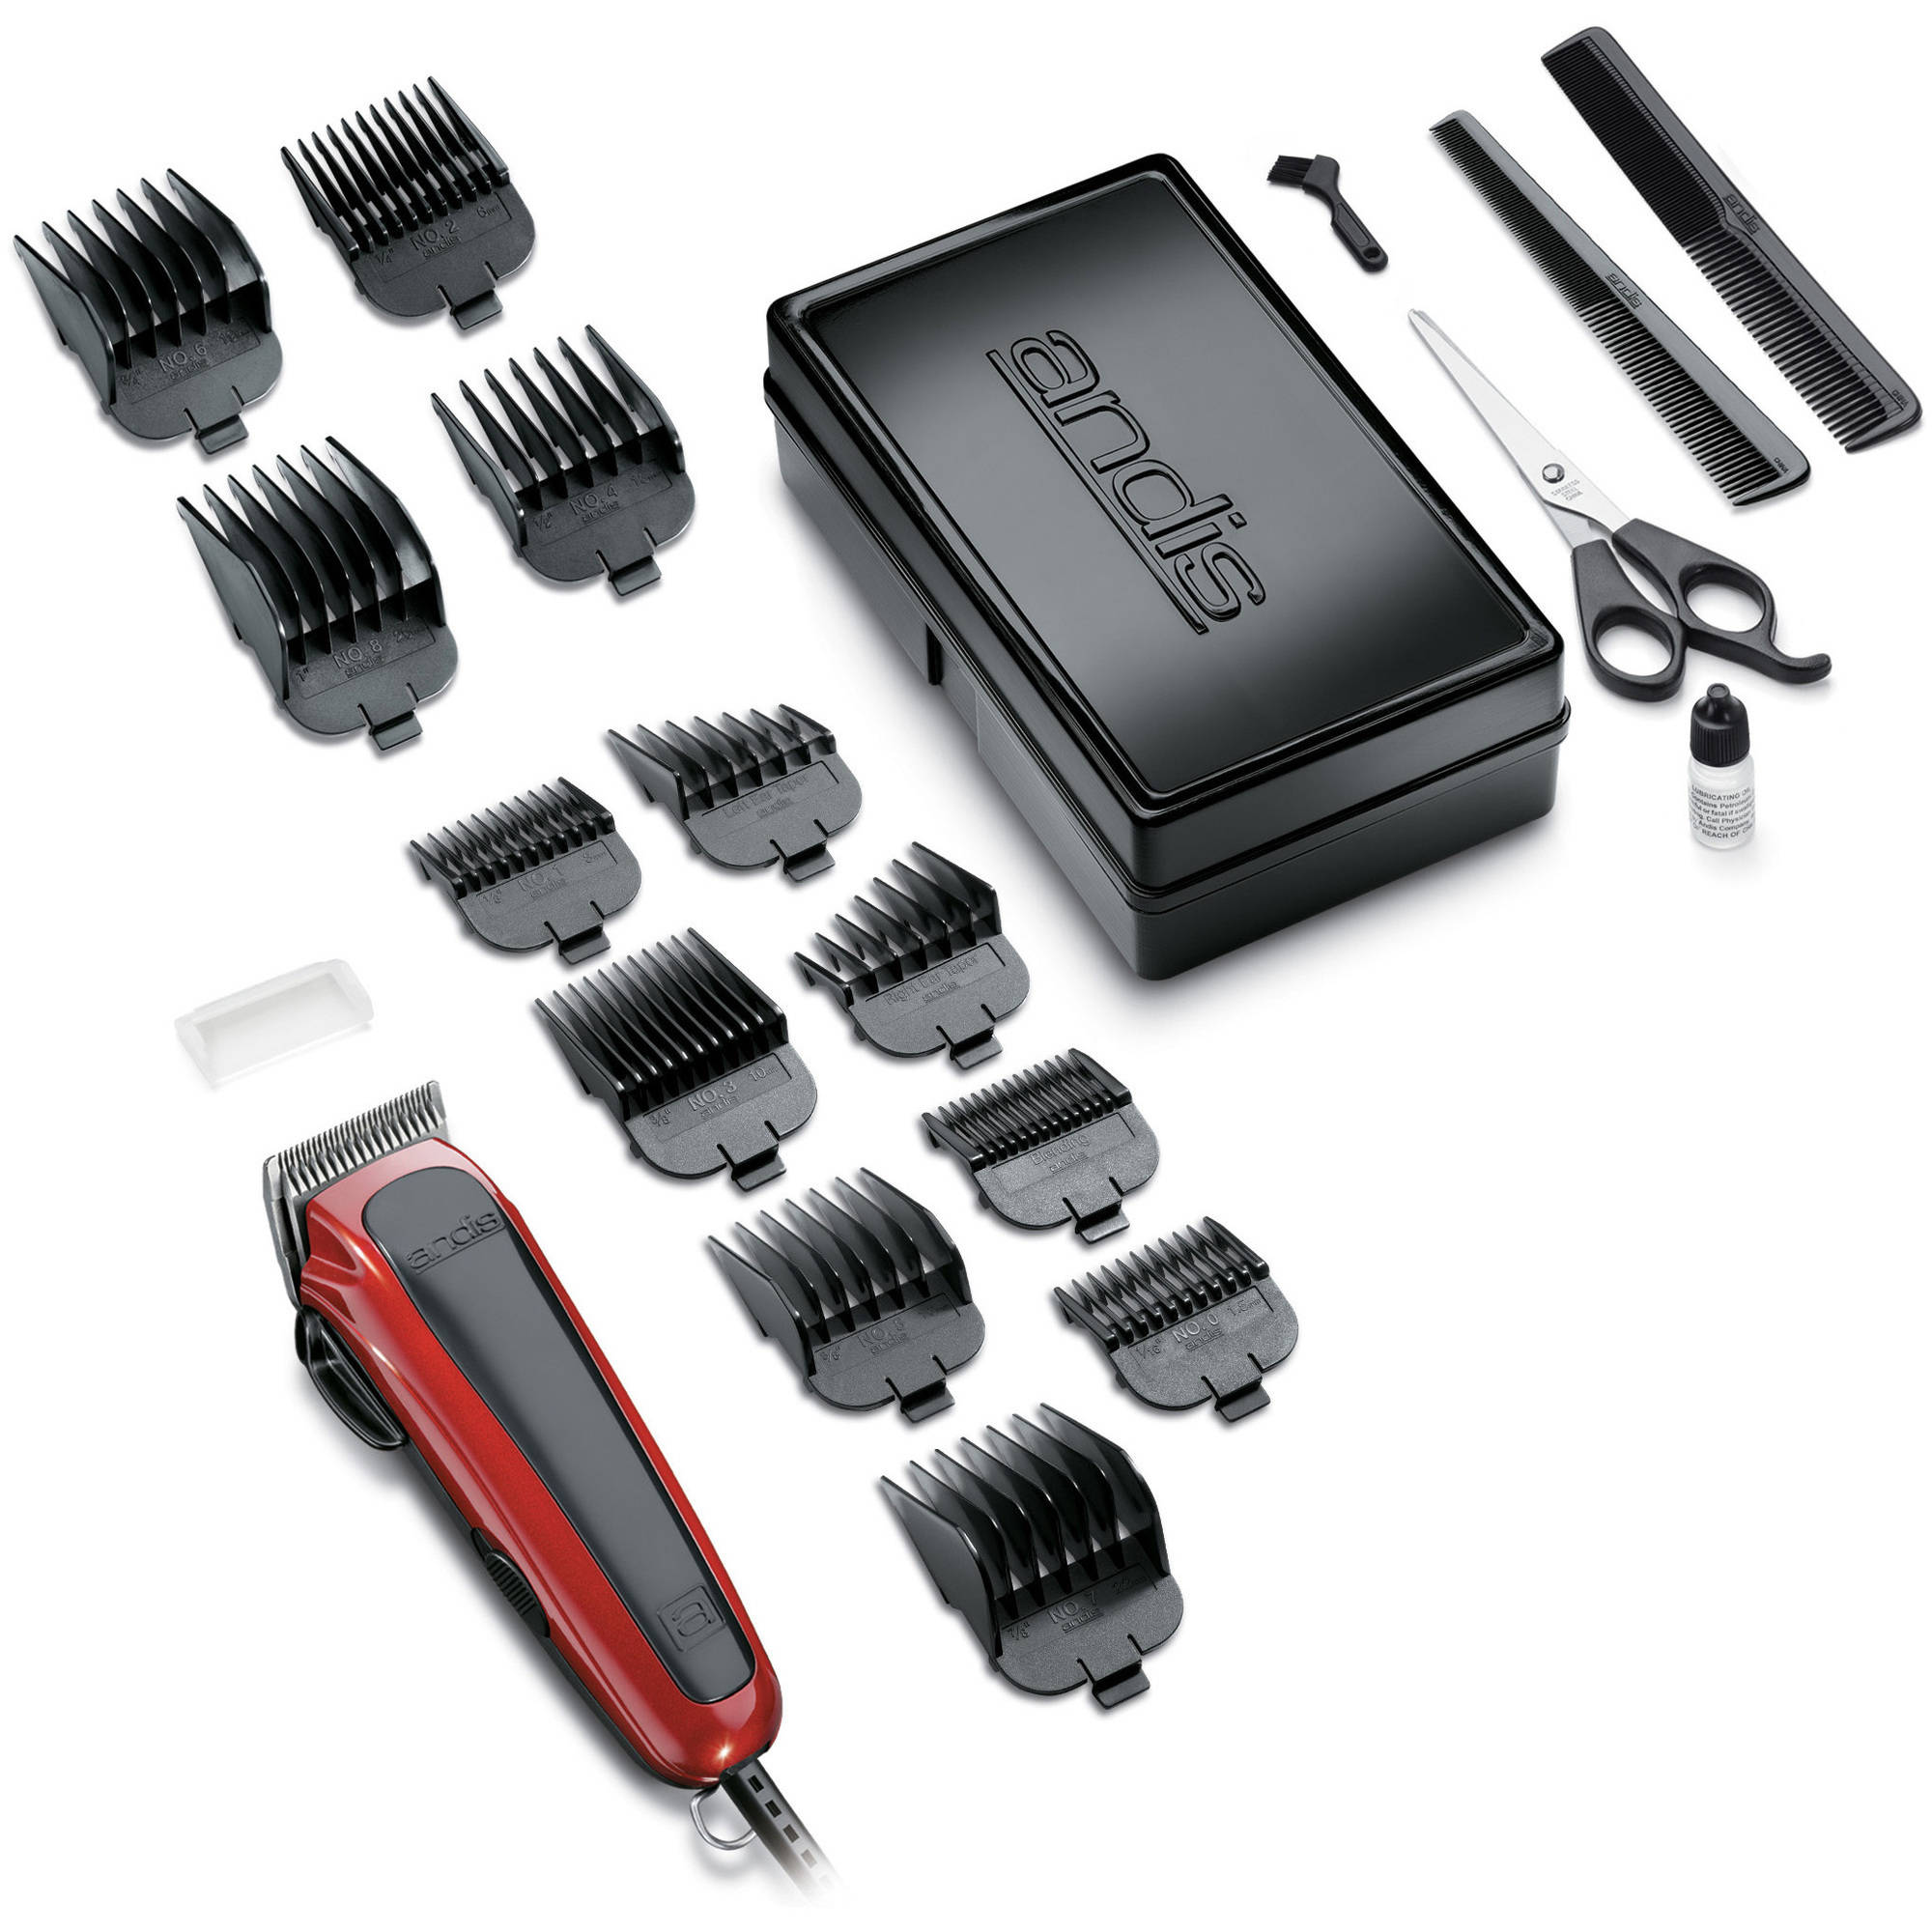 Wahl Deluxe Chrome Pro Home Haircutting Kit, Clipper and